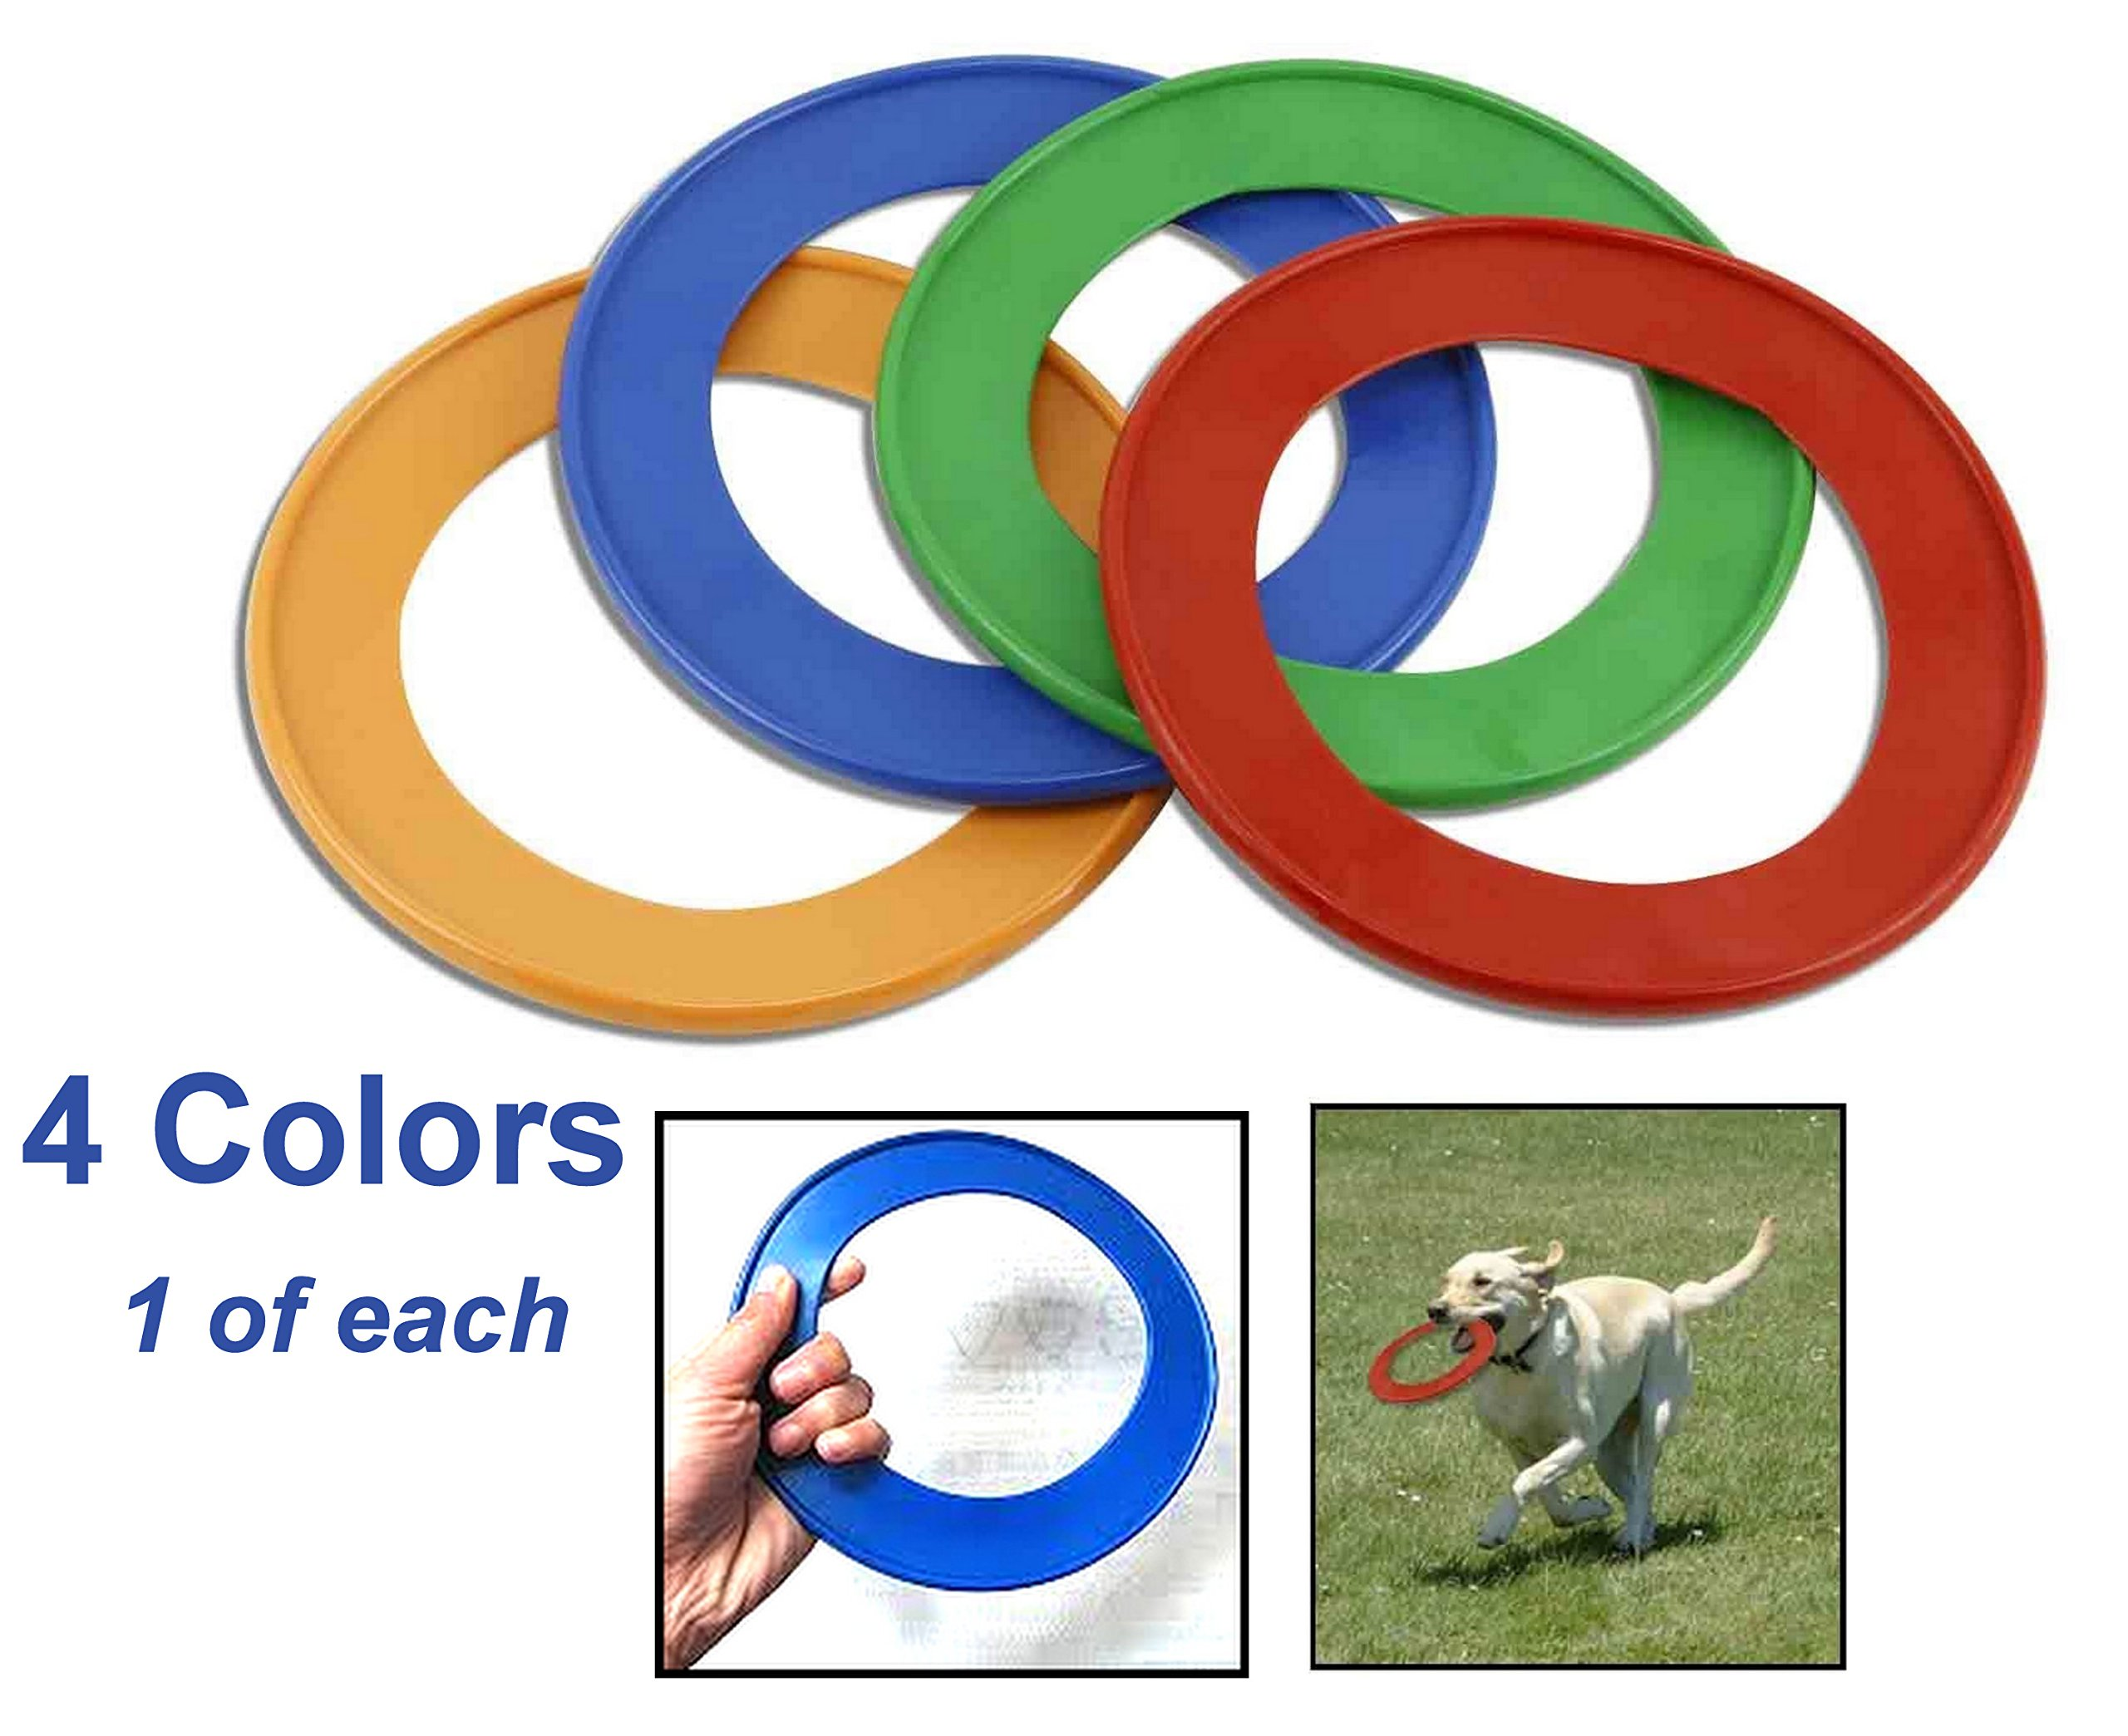 Set of 4 ALAZCO Pet Ring Fetch Frisbee Rings - Interactive play! Dogs Love Them! (one of each color)